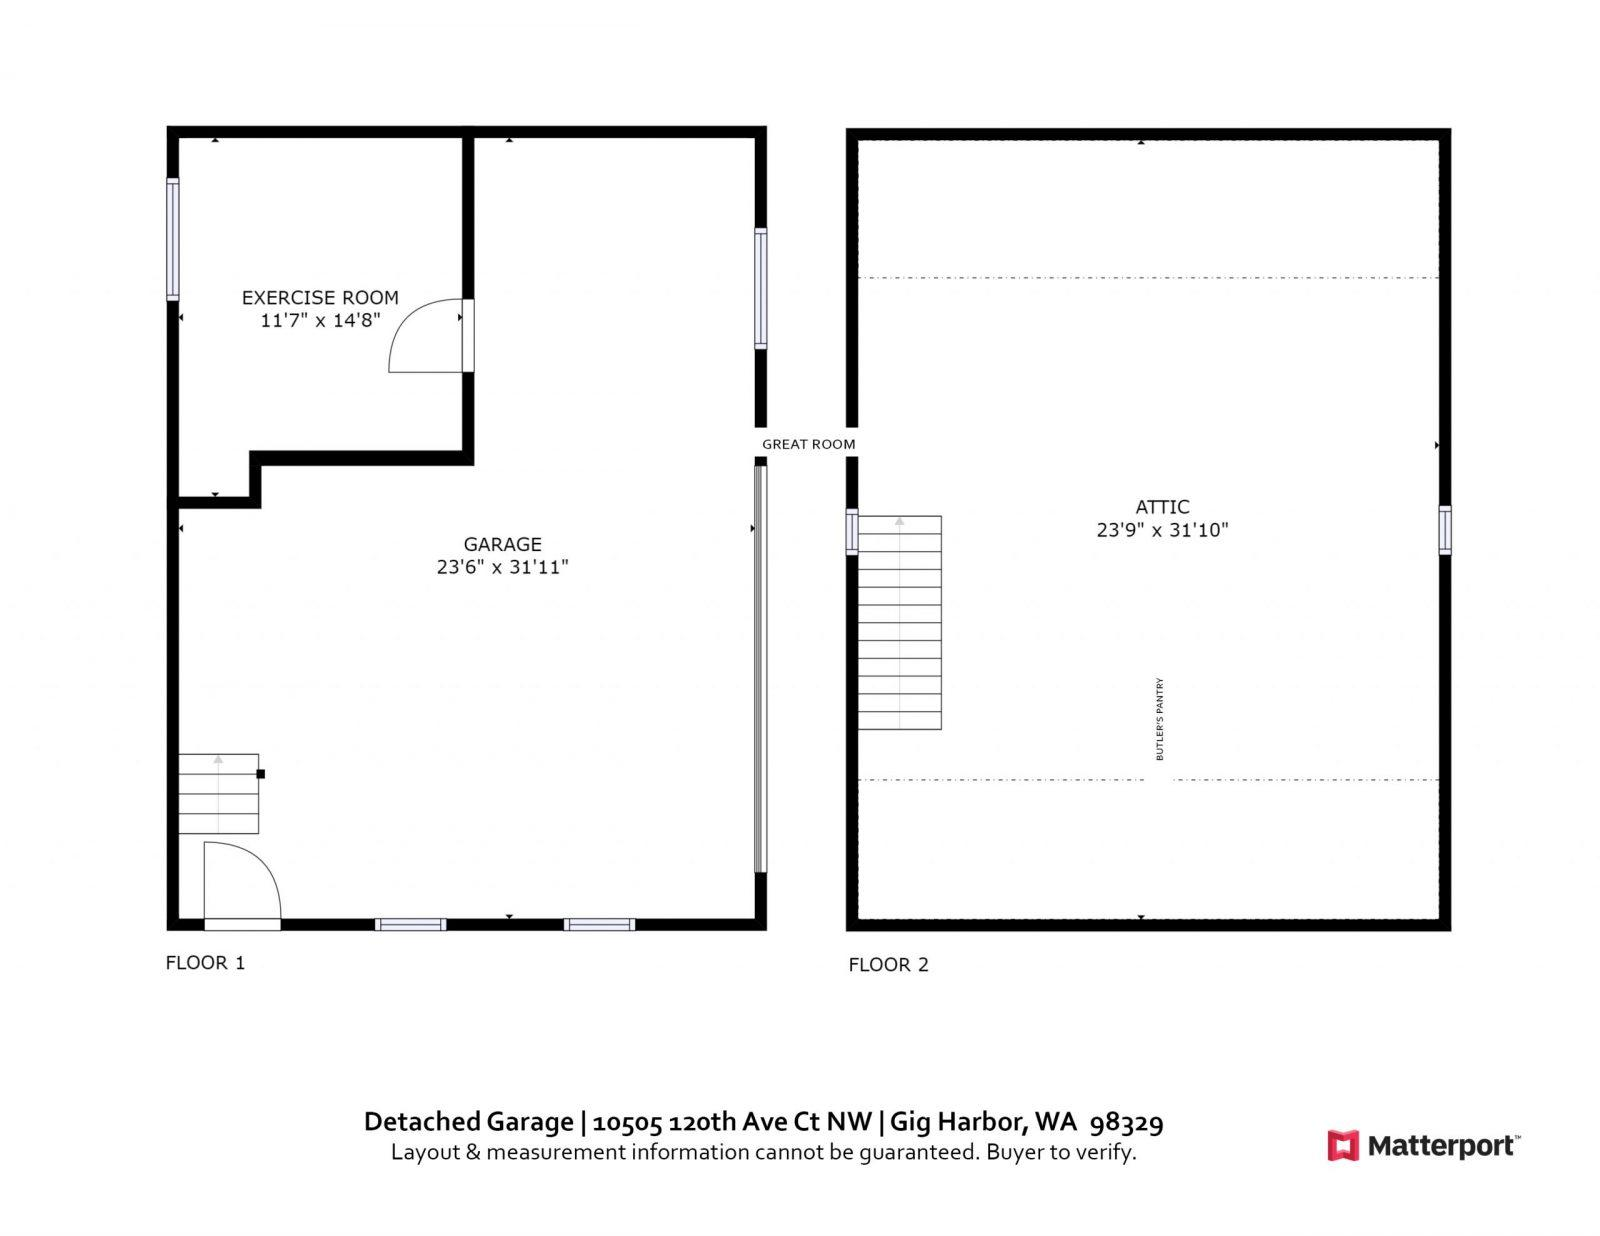 GARAGE FLOOR PLAN: 10505 120th Ave Ct NW, Gig Harbor WA 98329